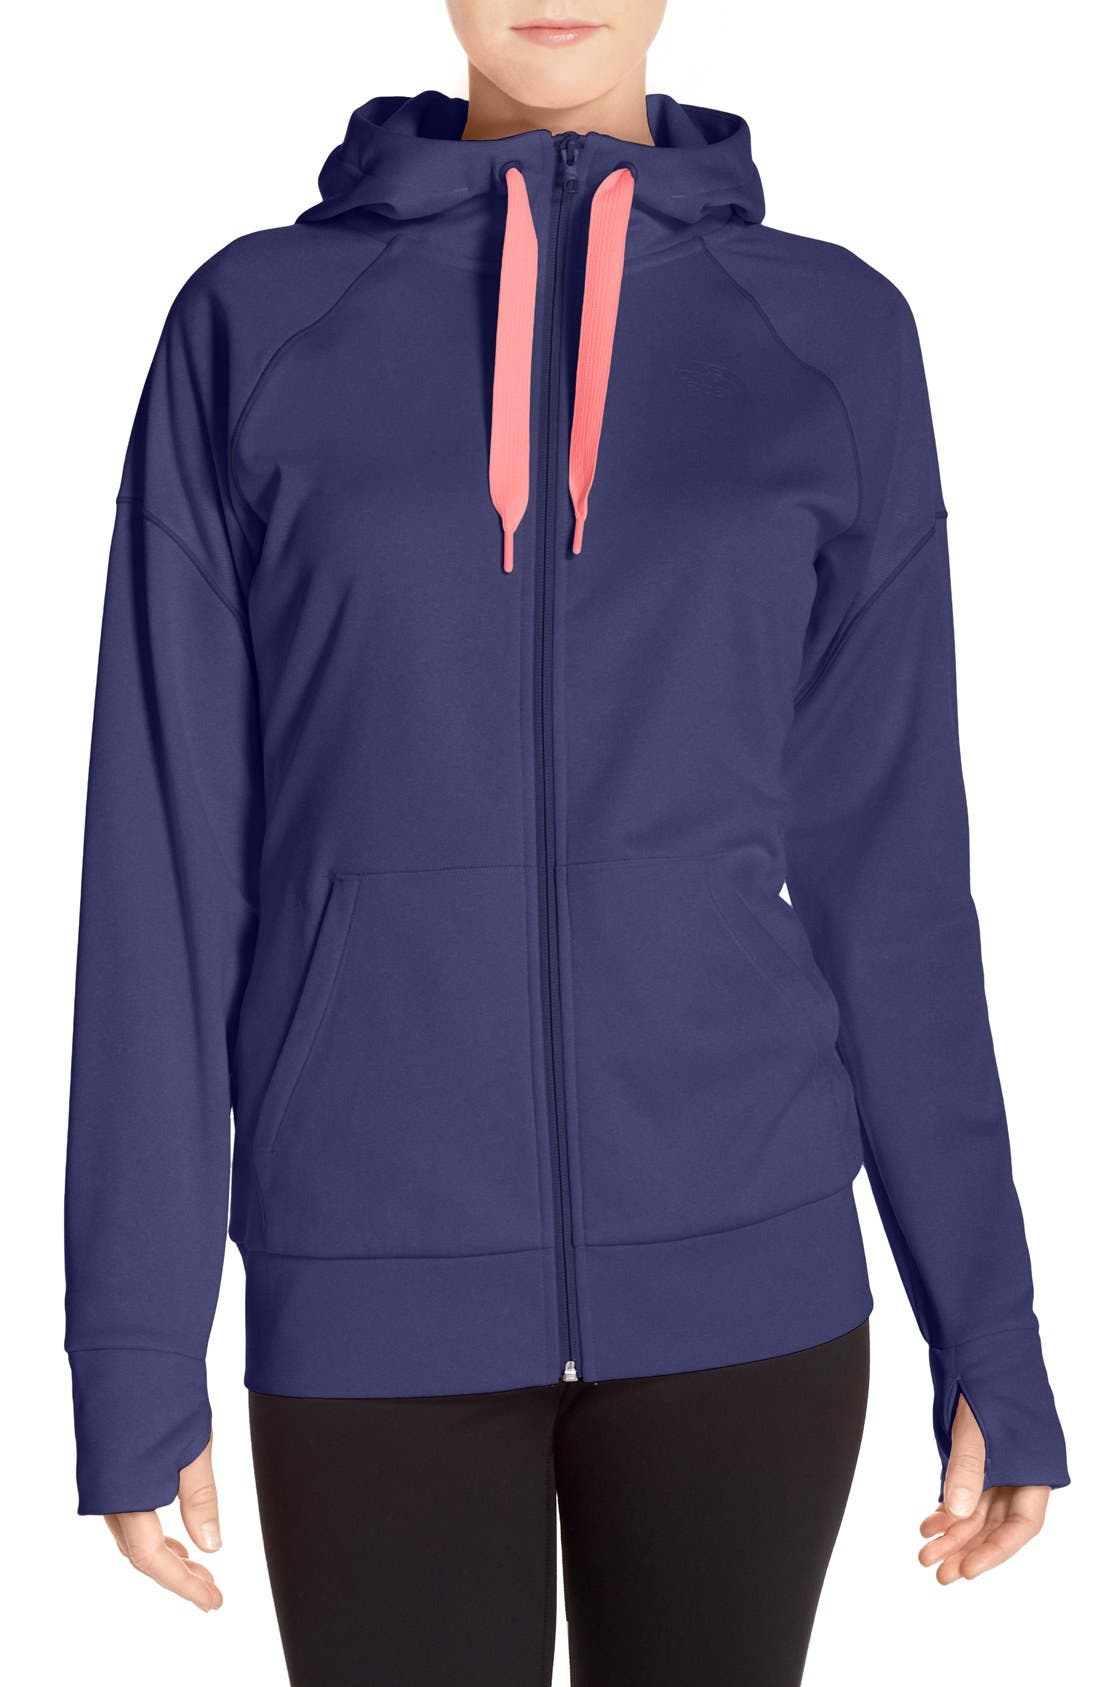 Alternate Image 1 Selected - The North Face 'Suprema' Hoodie